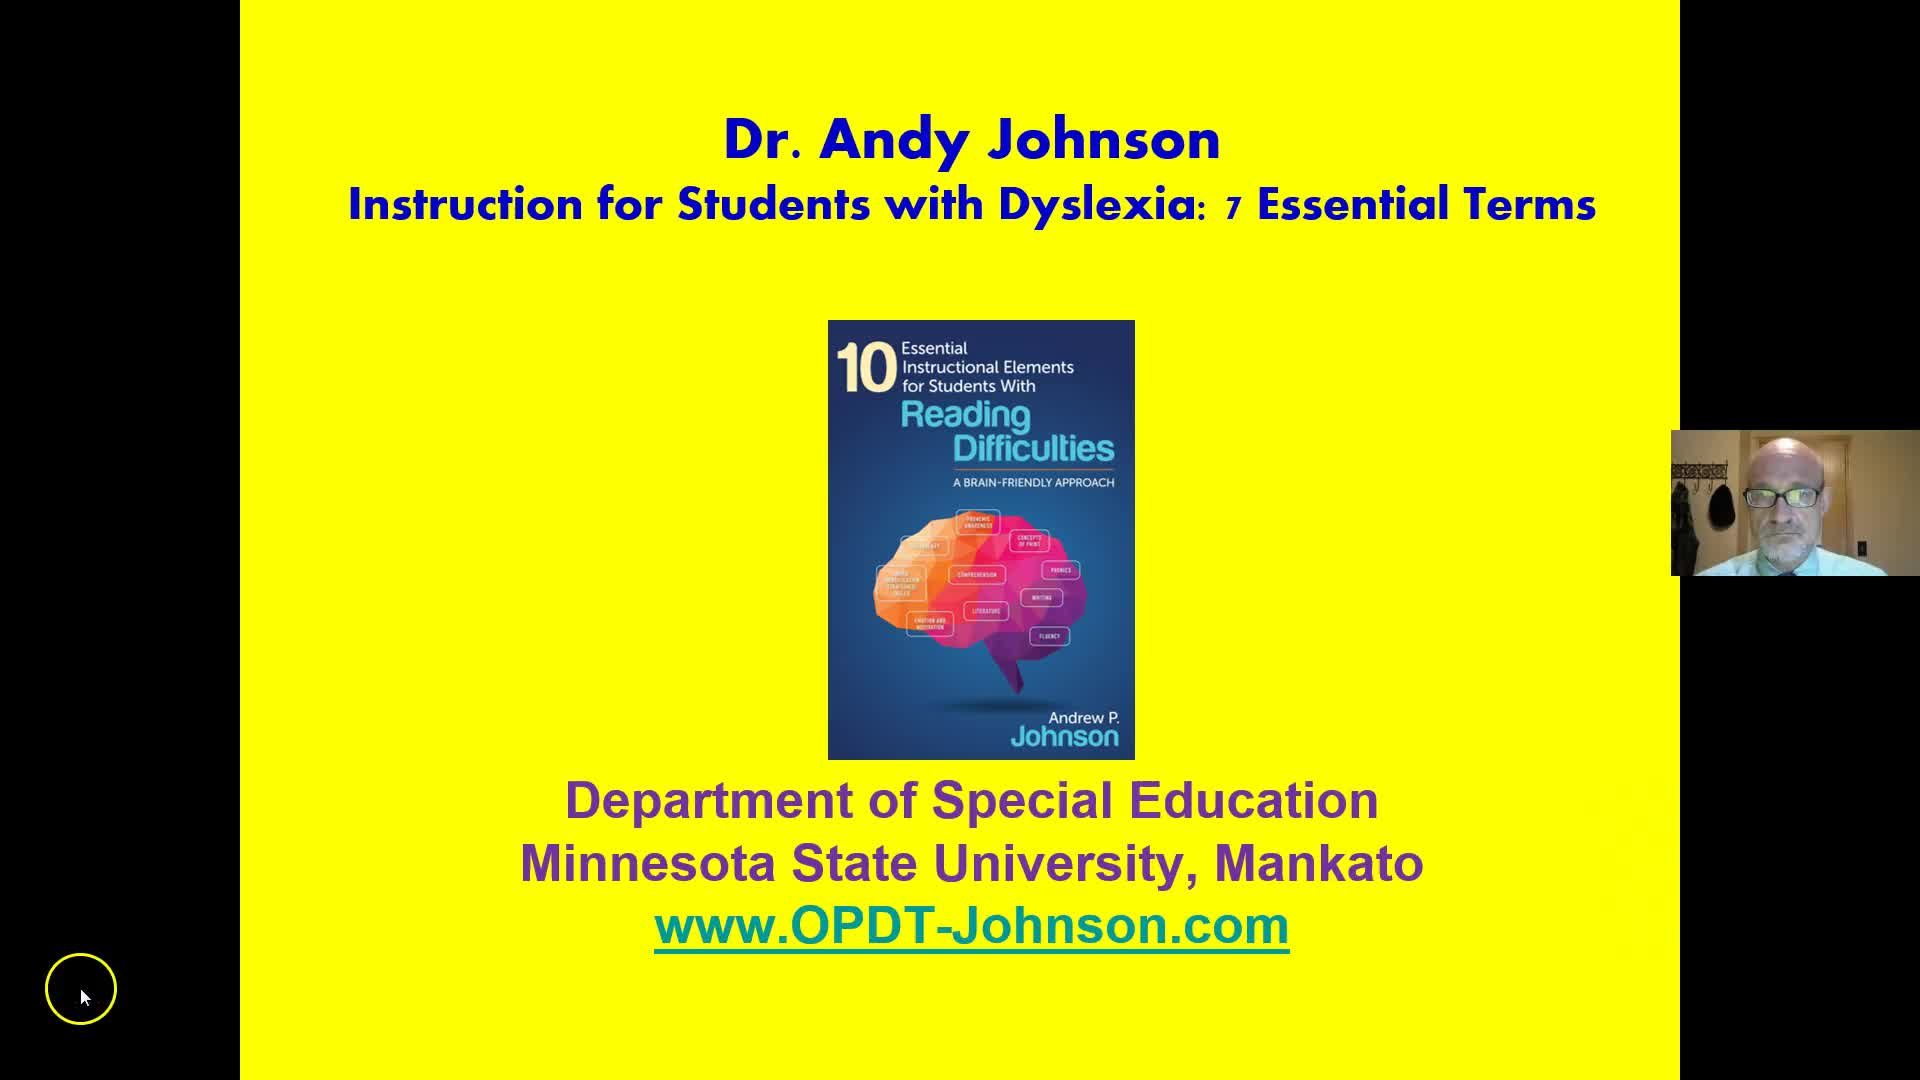 TEACHING STUDENTS WITH DYSLEXIA: 7 ESSENTIAL TERMS